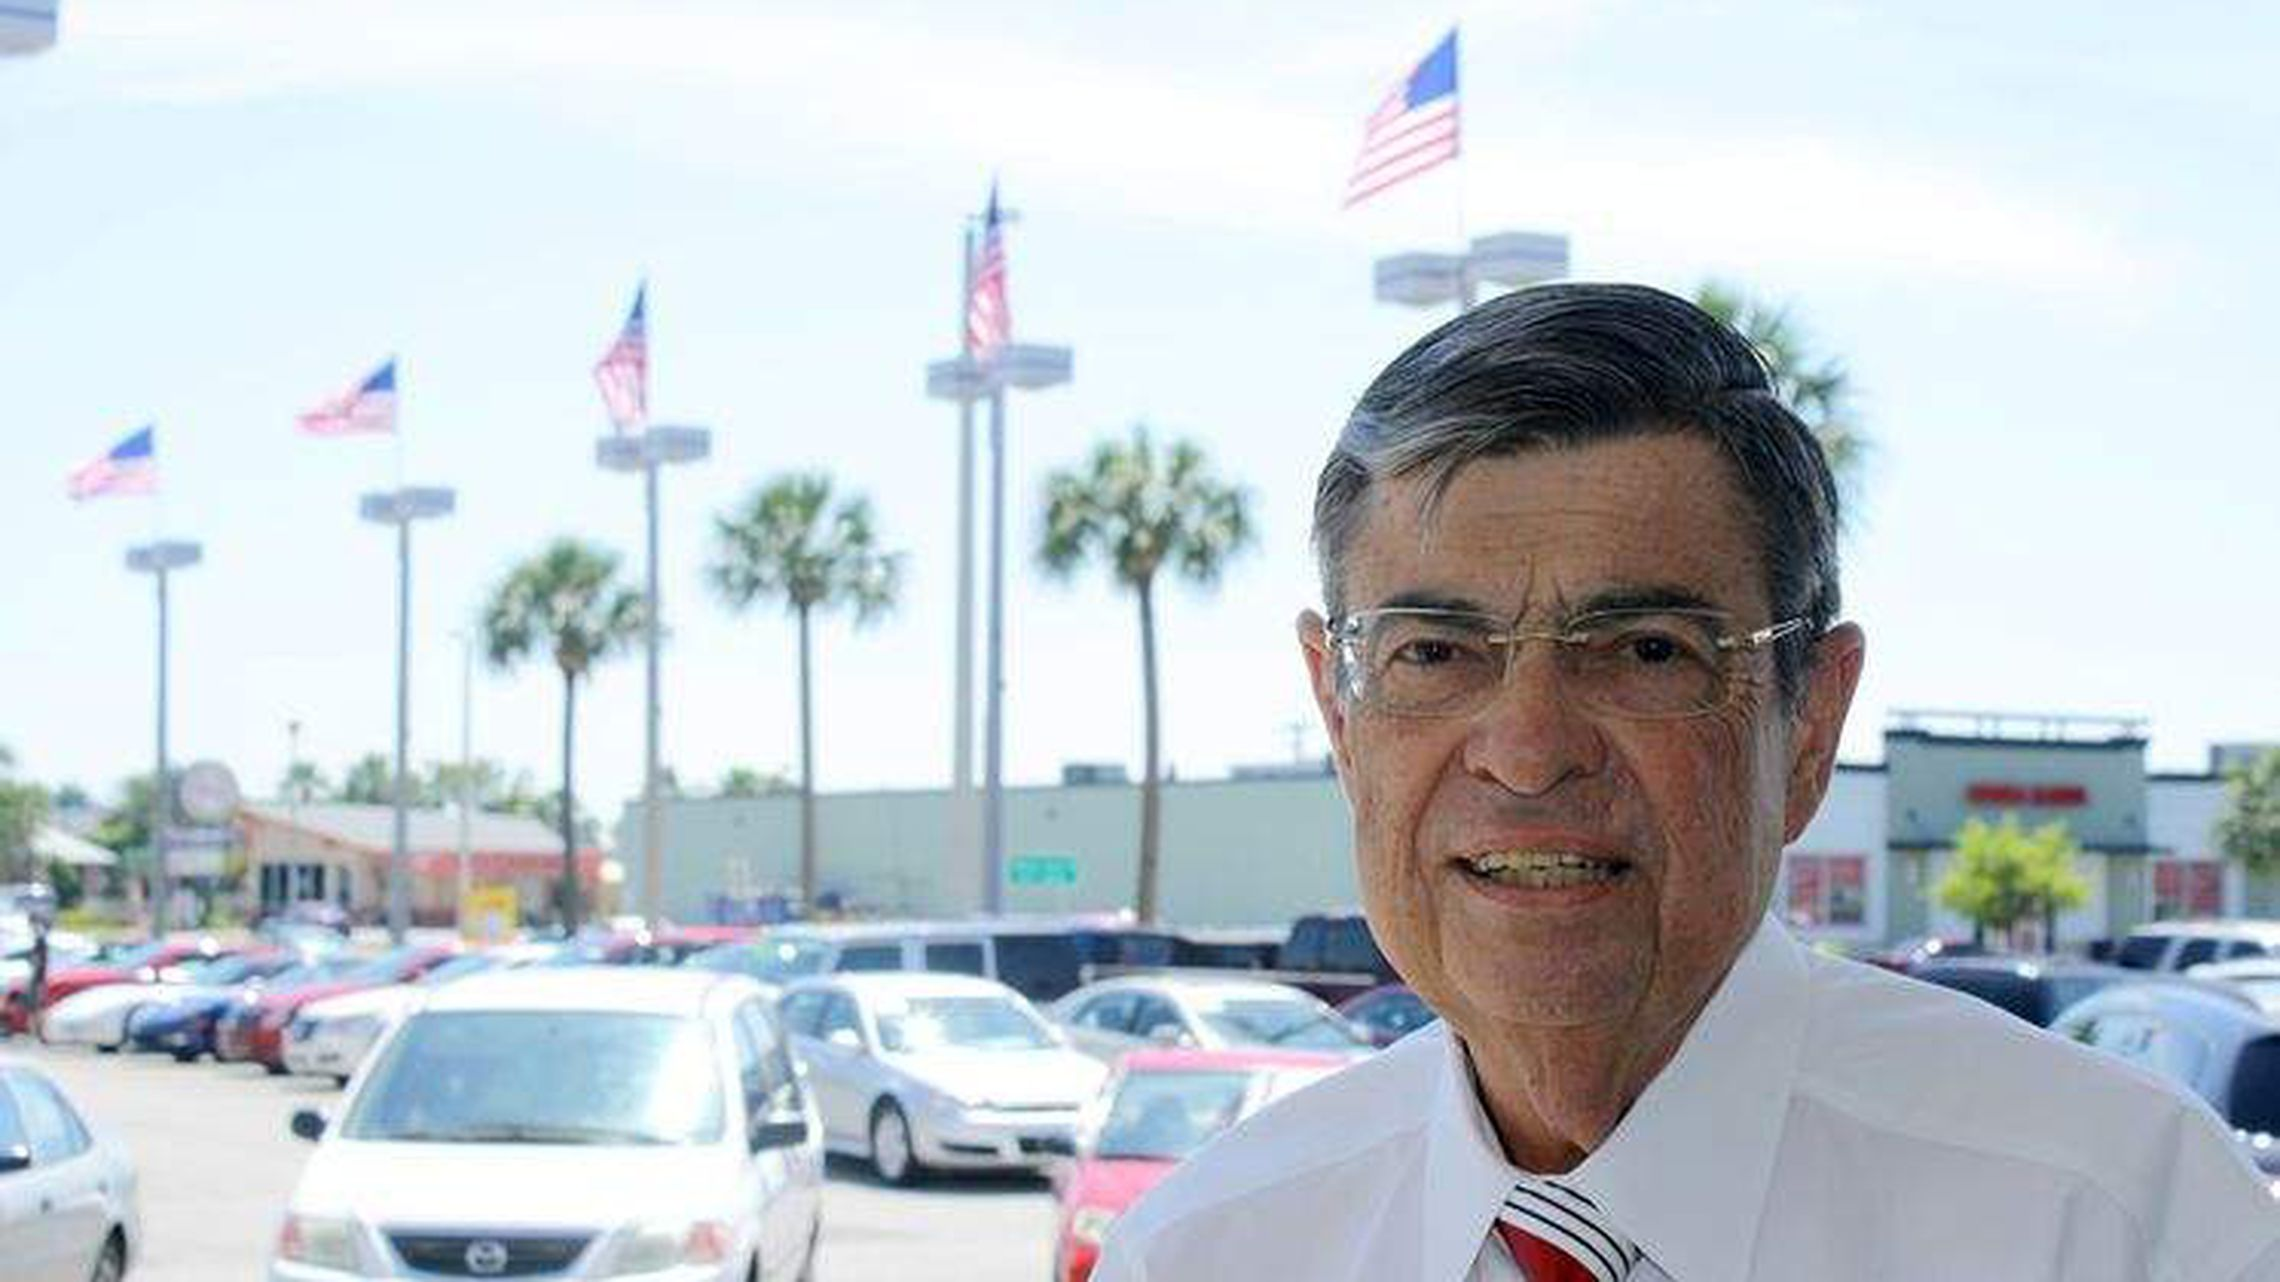 Michael Meagher Owner Of Maher Chevrolet Dies At 69